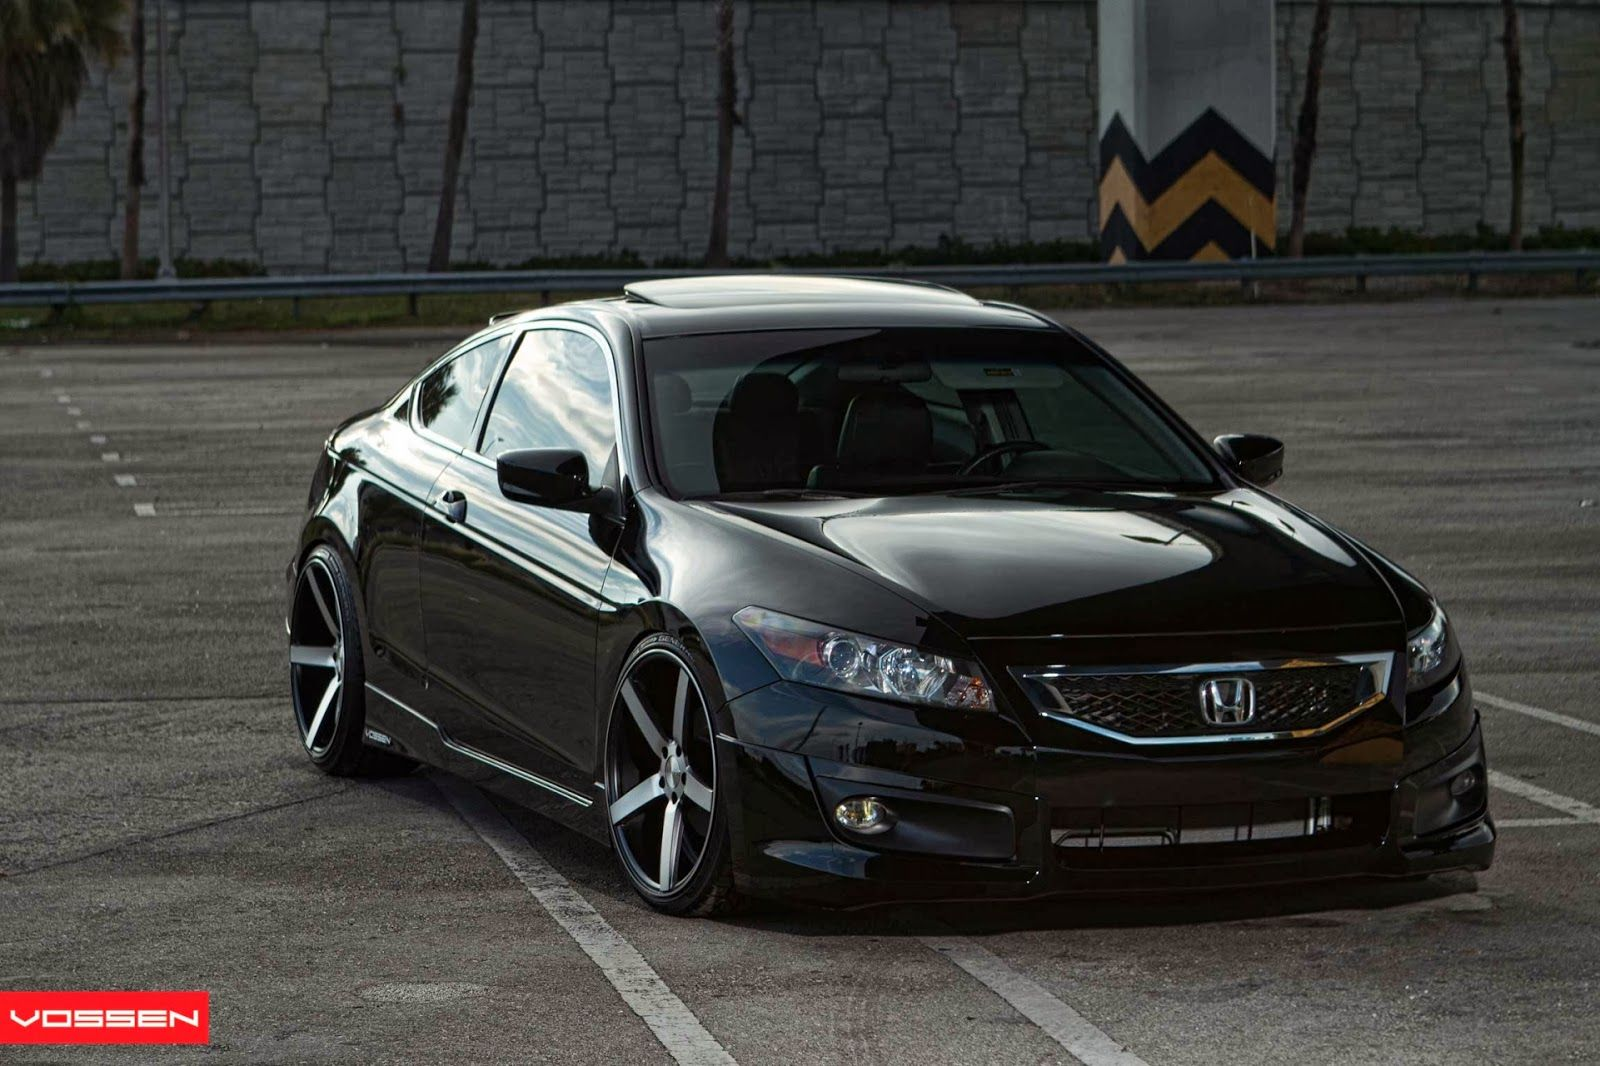 Cool Black Honda Accord Tuned Images Jpg 1600 215 1066